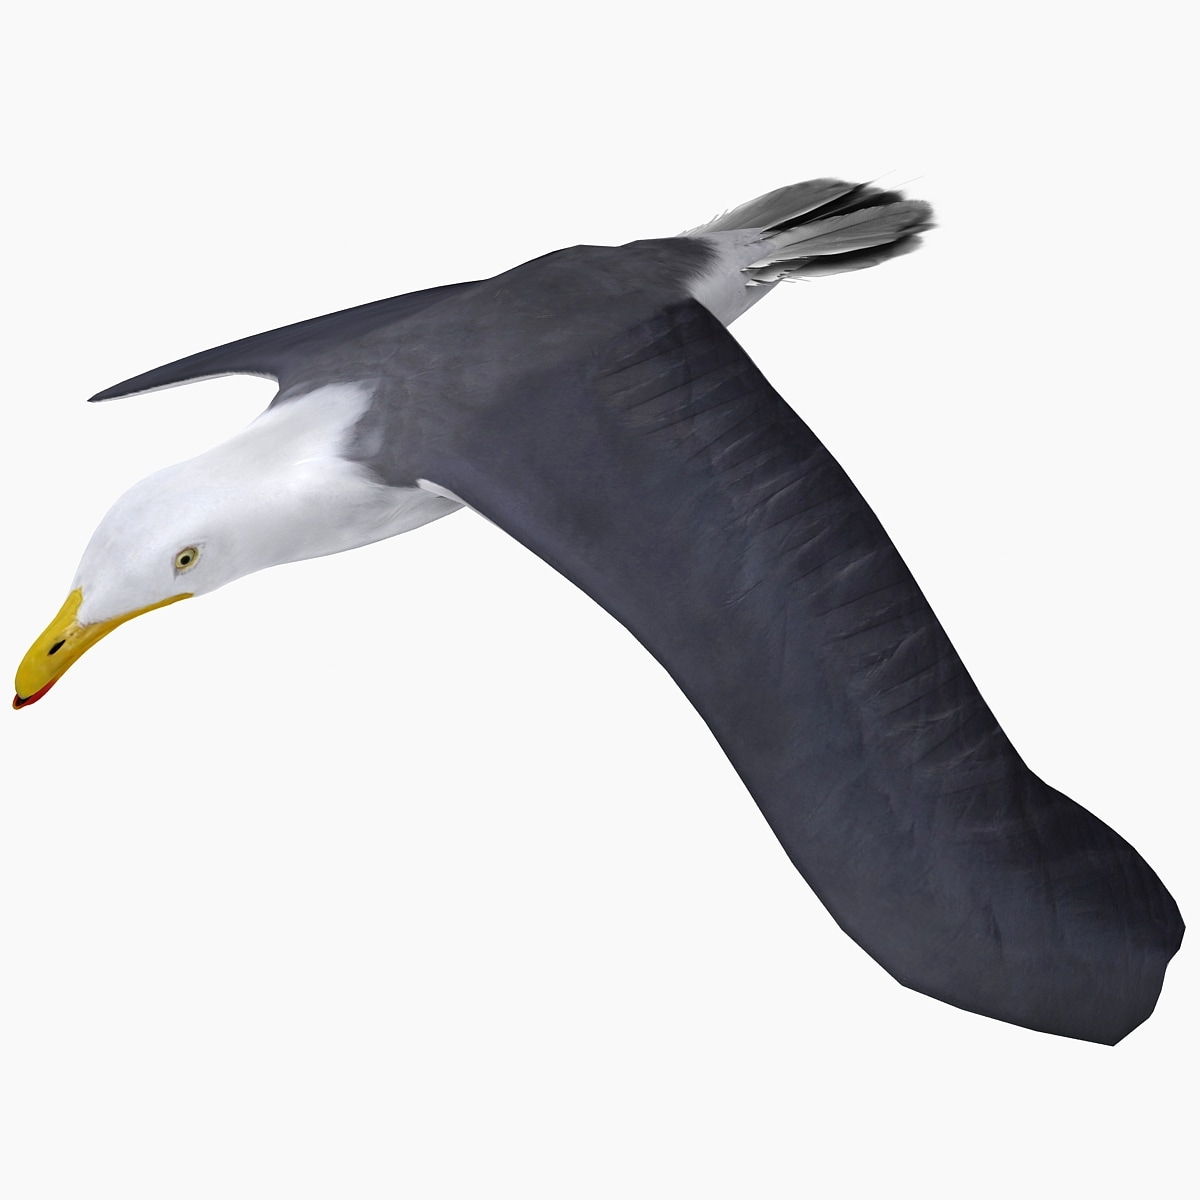 Gull_Flying_Animation_V1_001.jpg